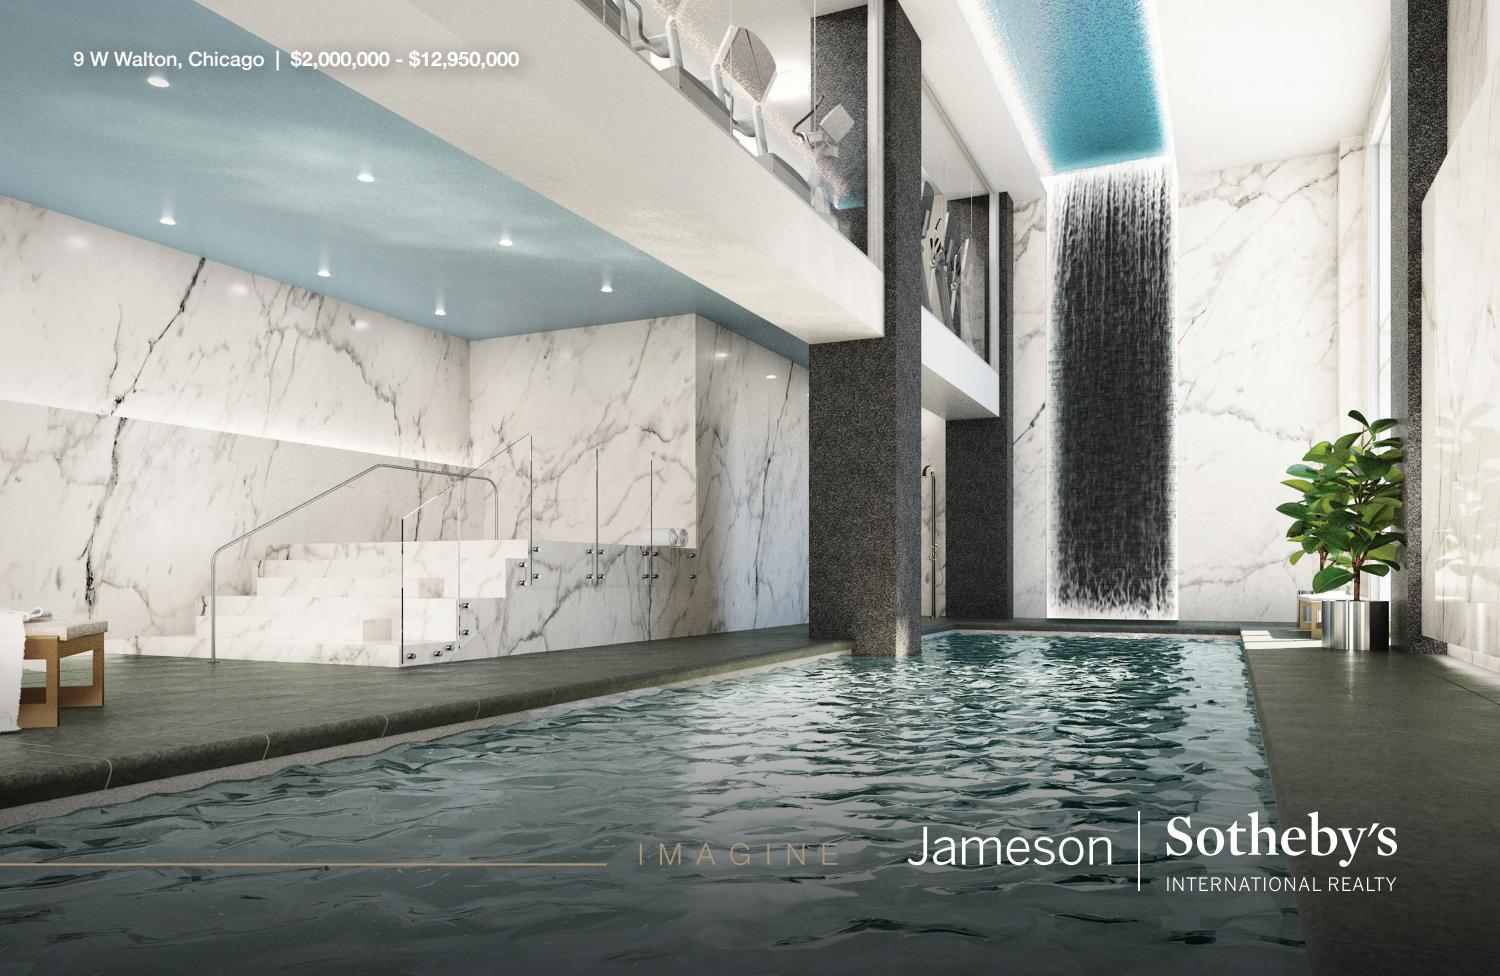 i m a g i n e by jameson sotheby s international i m a g i n e 2017 by jameson sotheby s international realty issuu